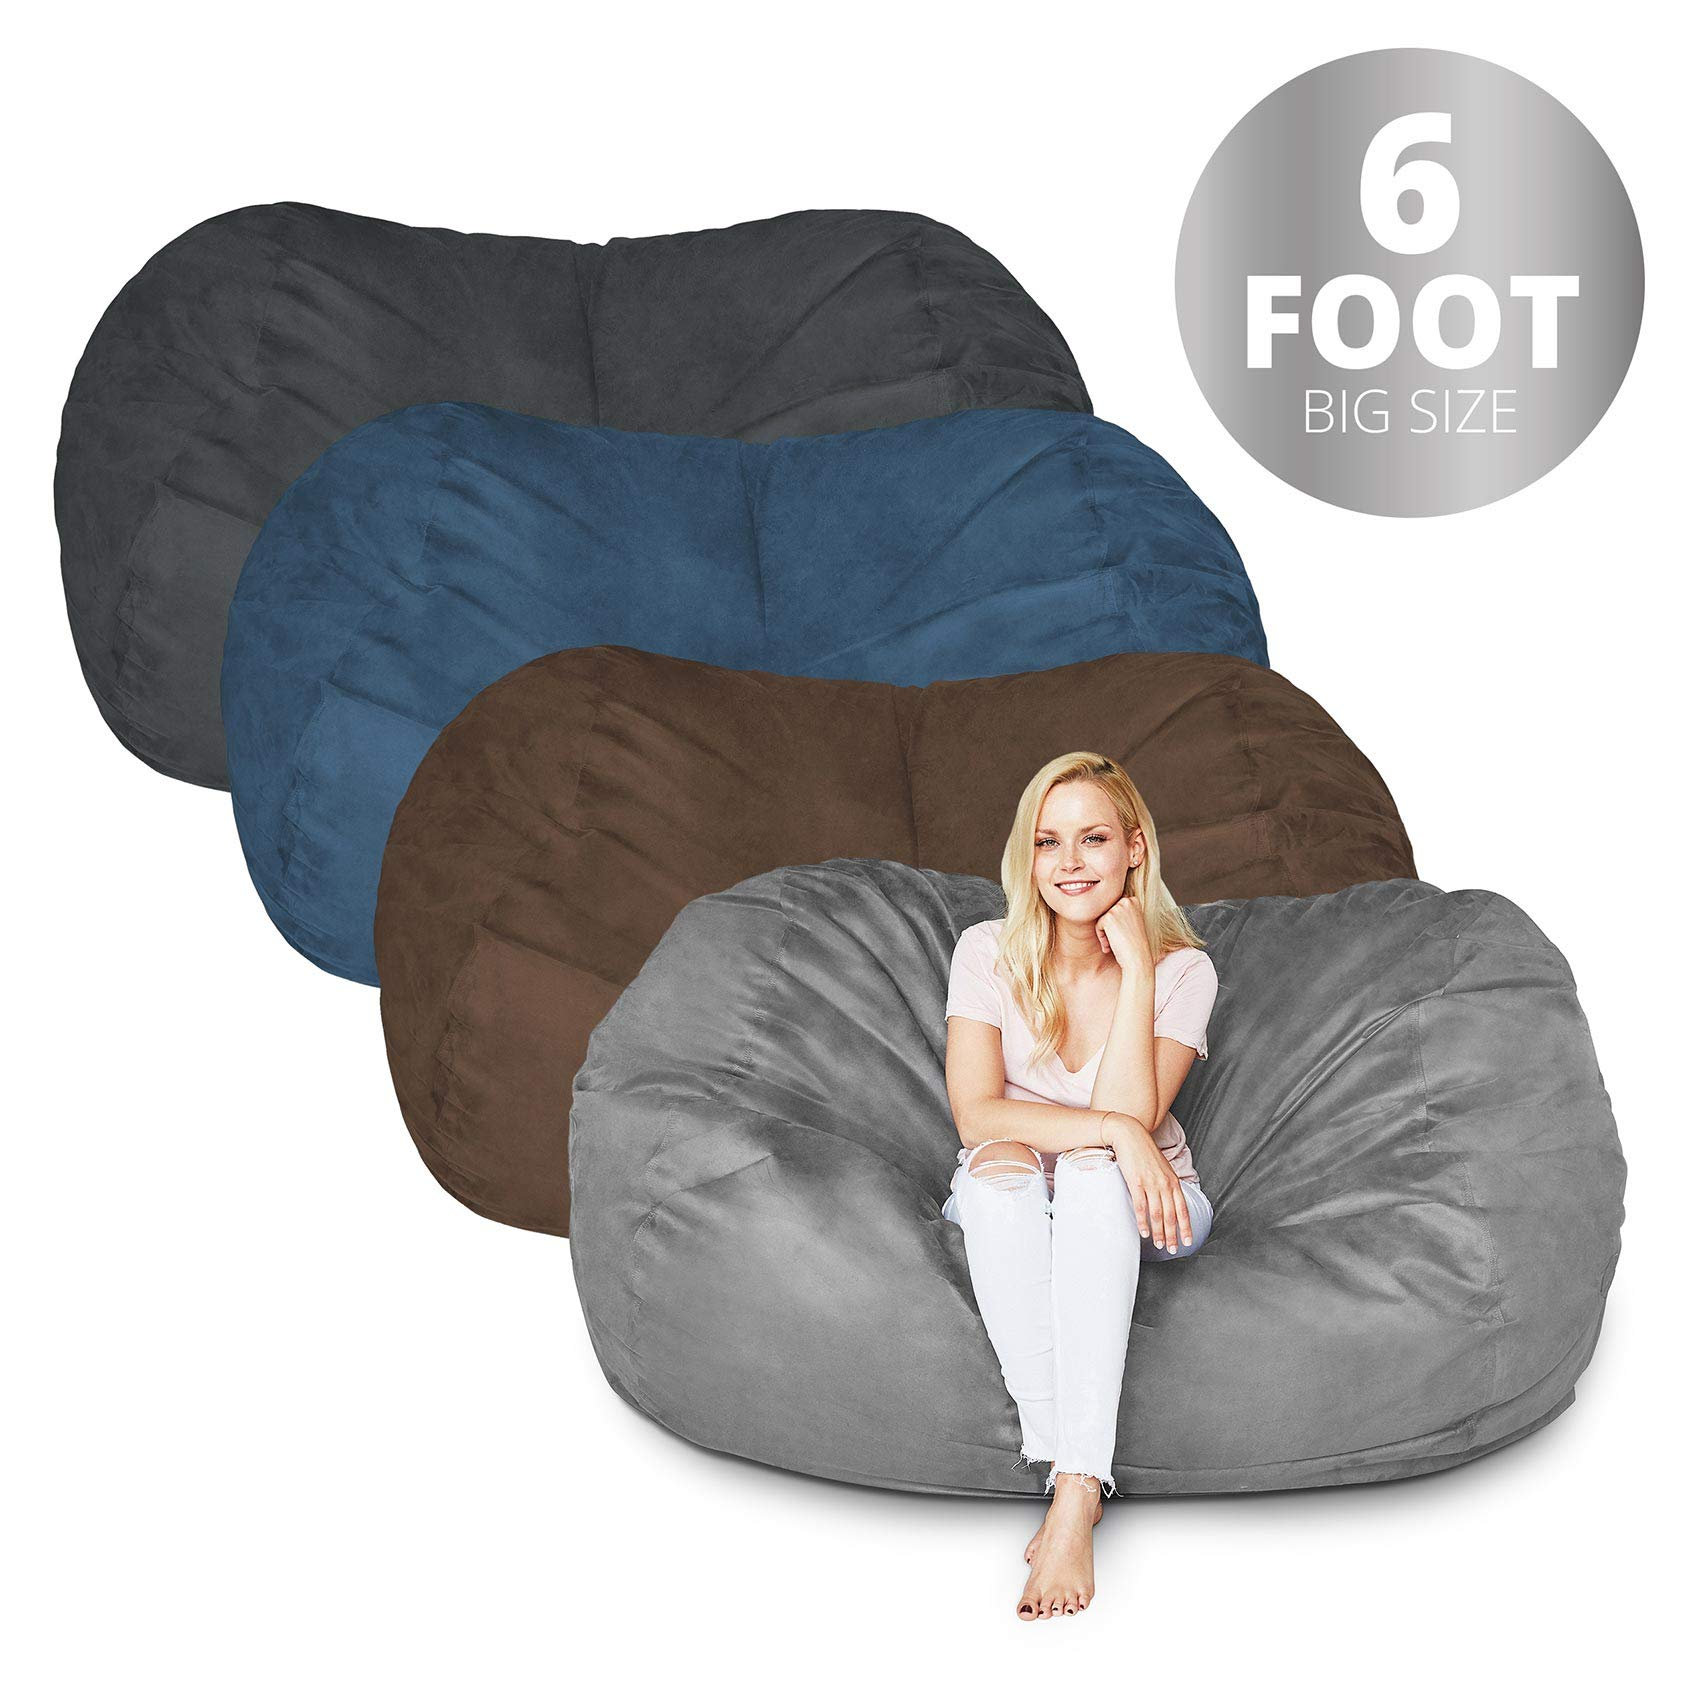 Bean Bag Chair | 6 Foot & Dark Grey | Microsuede Cover Machine Washable Big Size Sofa and Giant Lounger Furniture for Kids Teens and Adults by Lumaland